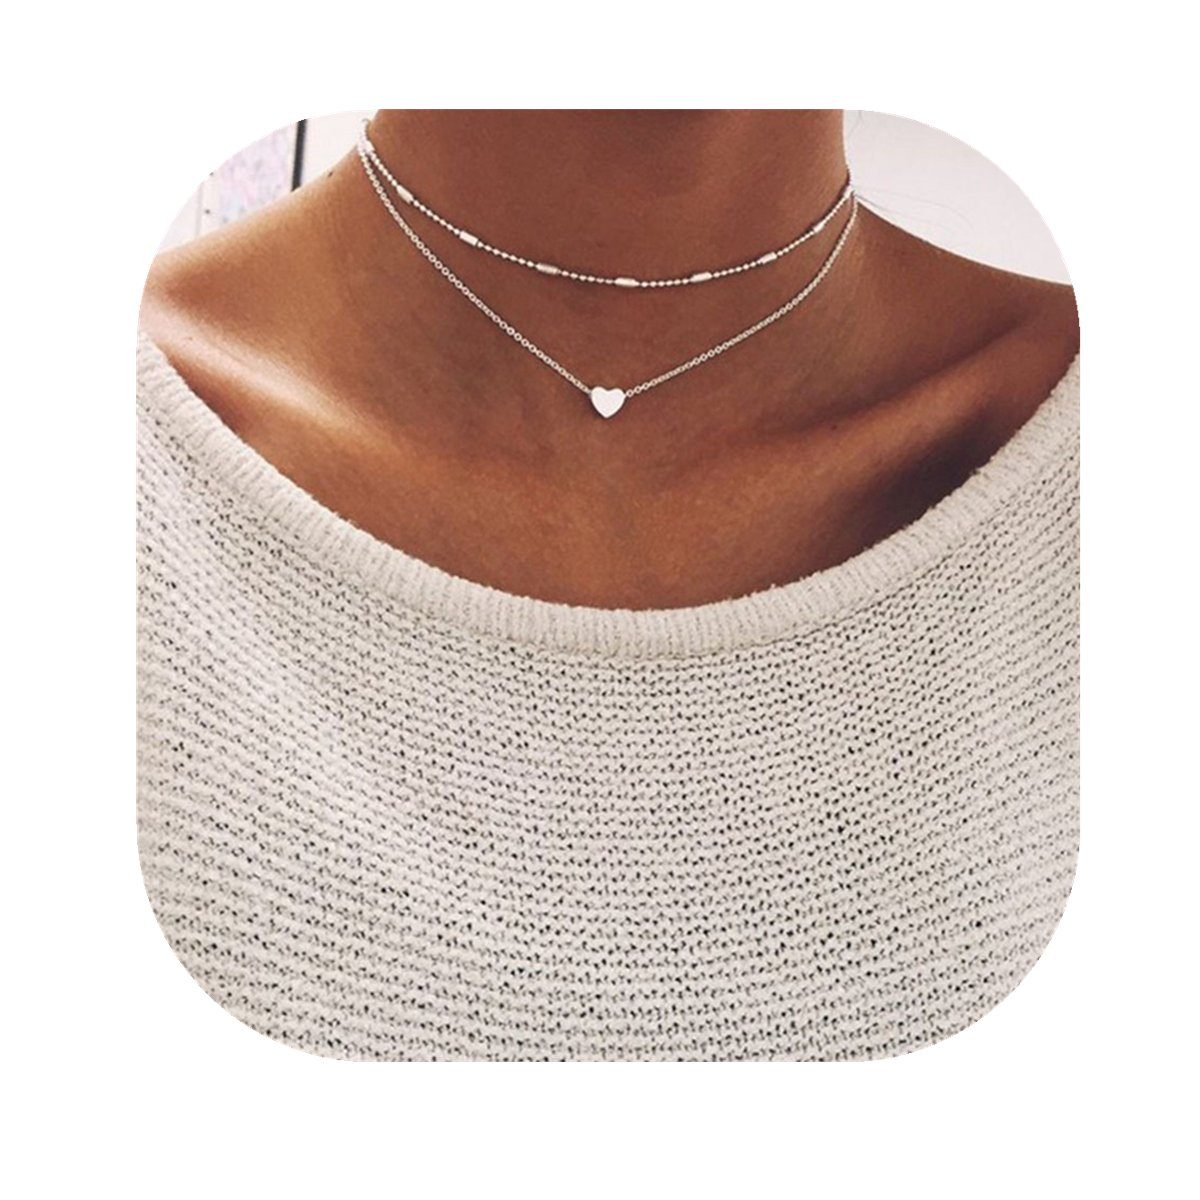 Anqifull Dainty Layered Gold Chocker Handmade Beads Fill Heart White Opal Necklace for Women Girls 012 by Anqifull (Image #2)